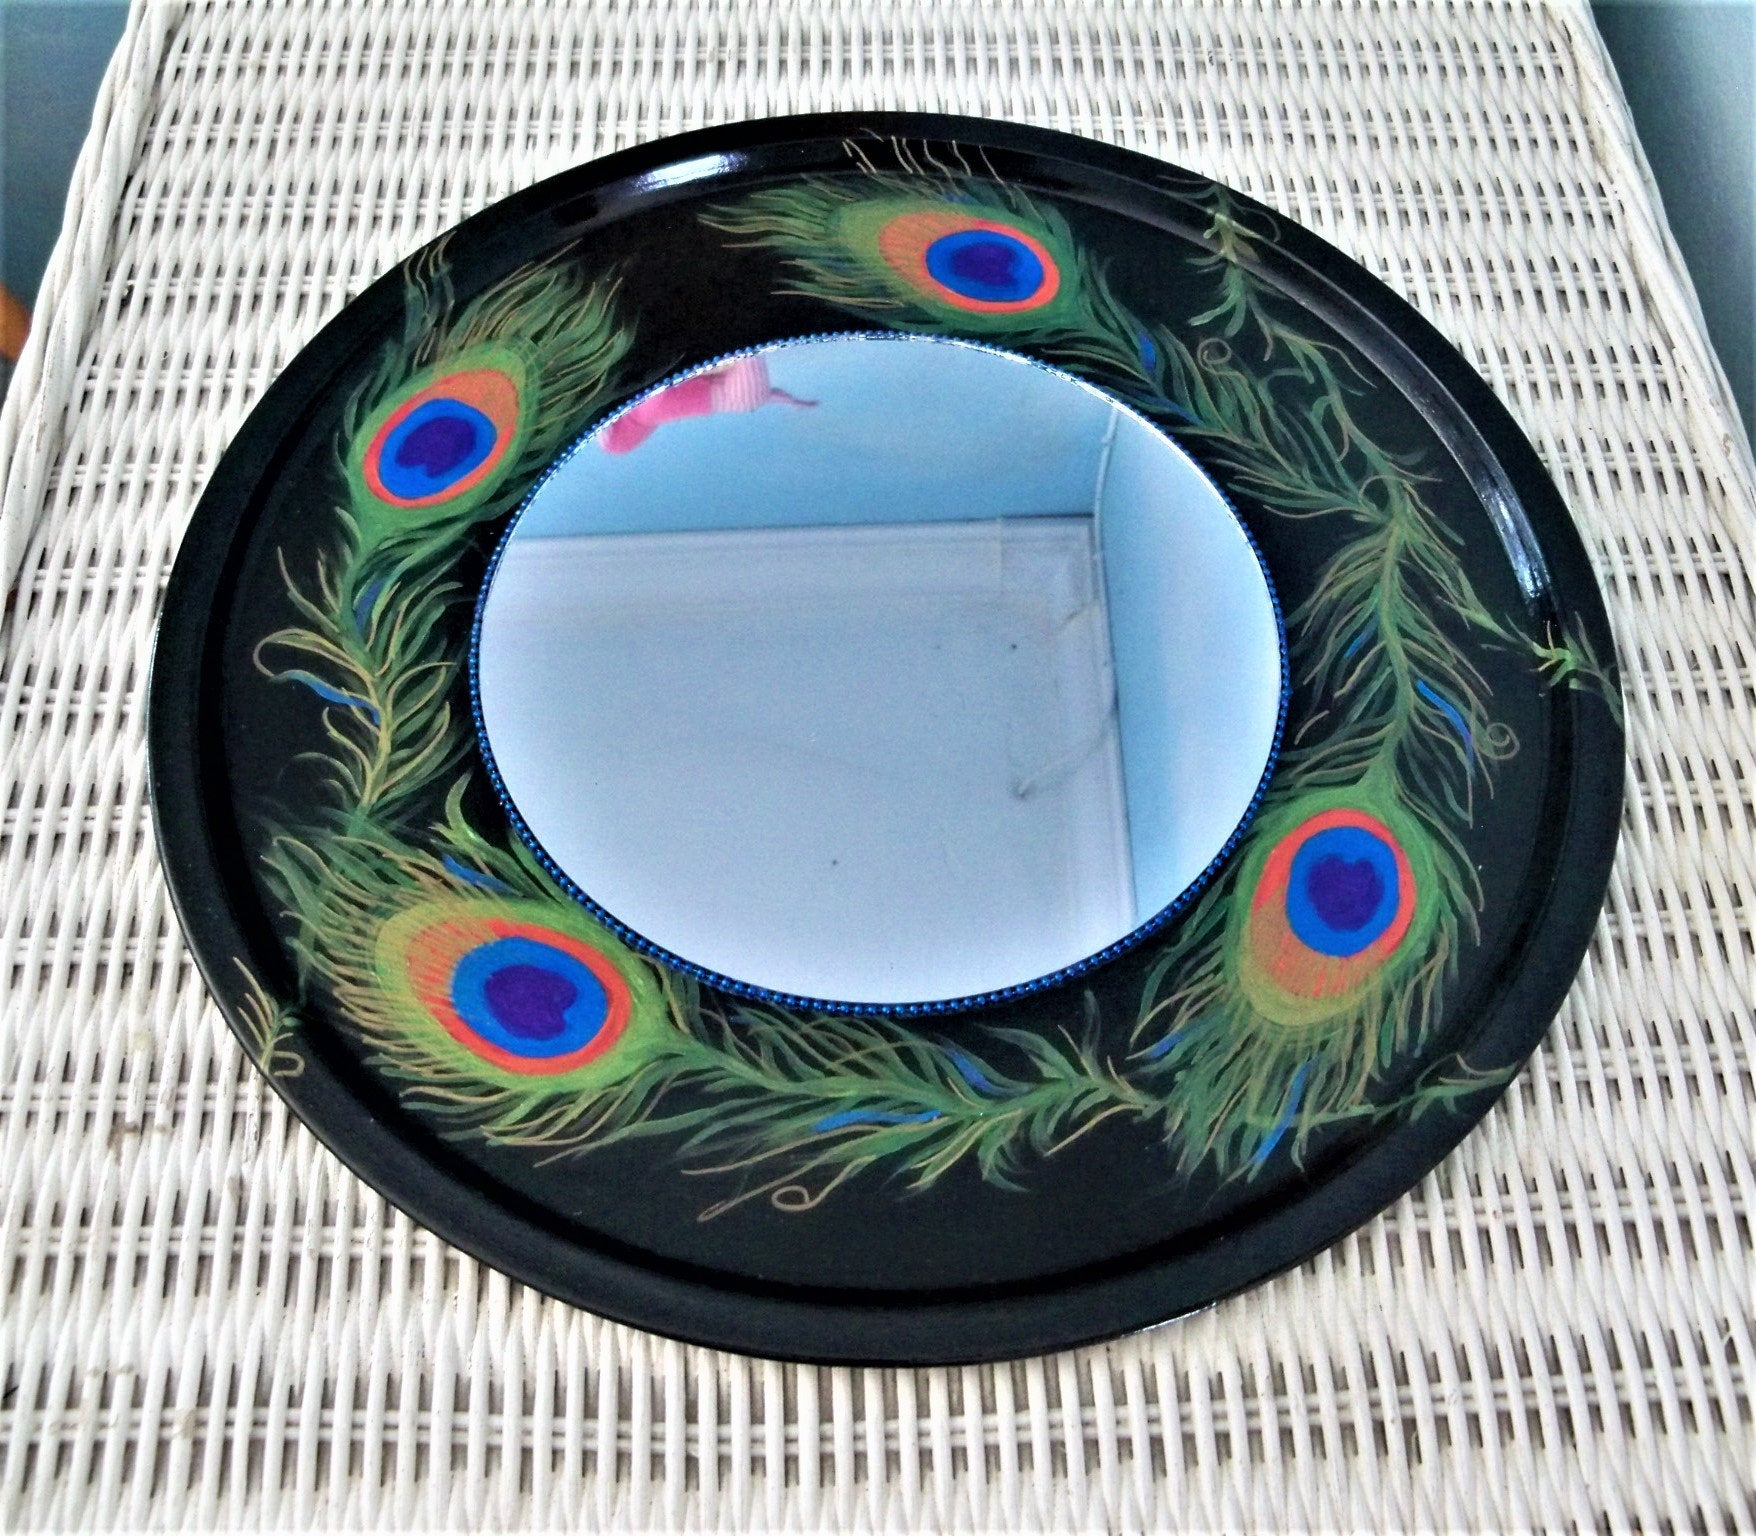 Decorative Accent Mirror, Peacock Wall Decor, Black Round Mirror, Hippie  Feather Mirror, Hand Painted Recycled, Eclectic Bedroom Mirror, Regarding Round Eclectic Accent Mirrors (Photo 27 of 30)